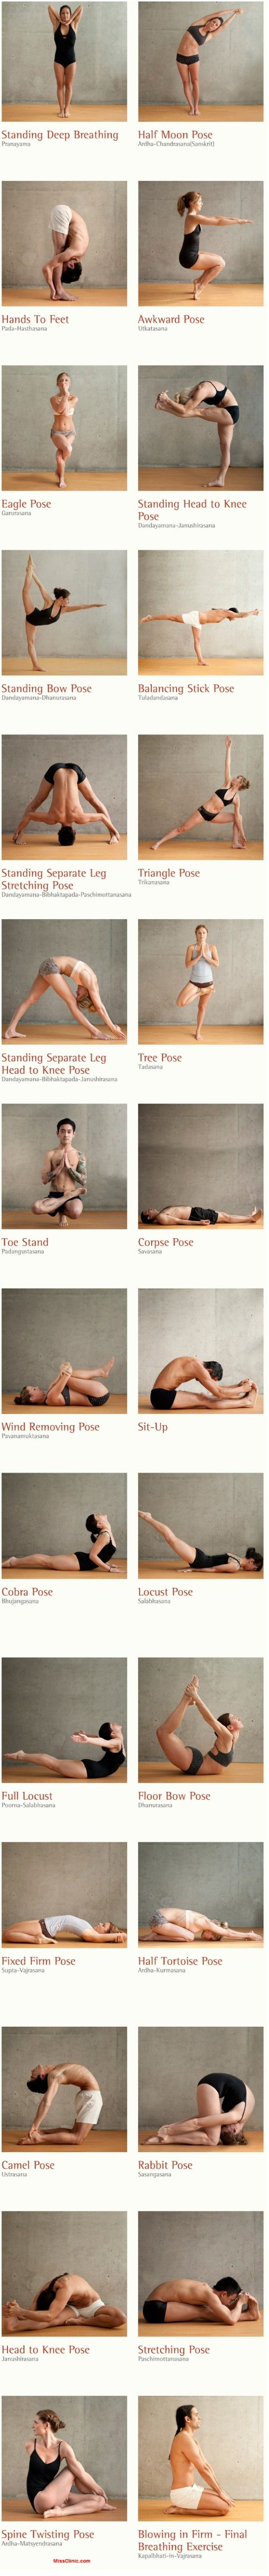 The 26 bikram yoga poses and 2 breathing exercises